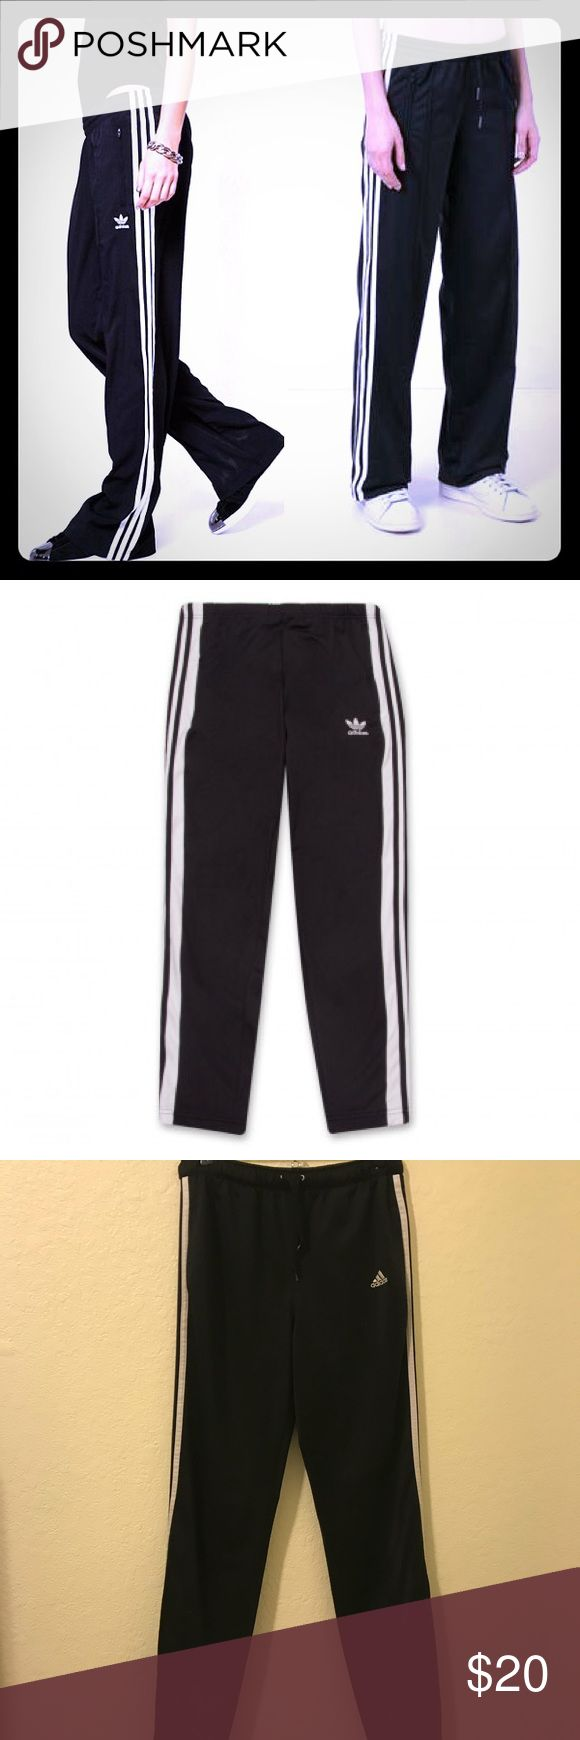 """Adidas Originals Track Pants Classic style with three stripes down each leg. Size tag was cutout of pants. These are a small. Top of waistband to bottom hem measures approximately 40"""" adidas Pants Track Pants & Joggers"""